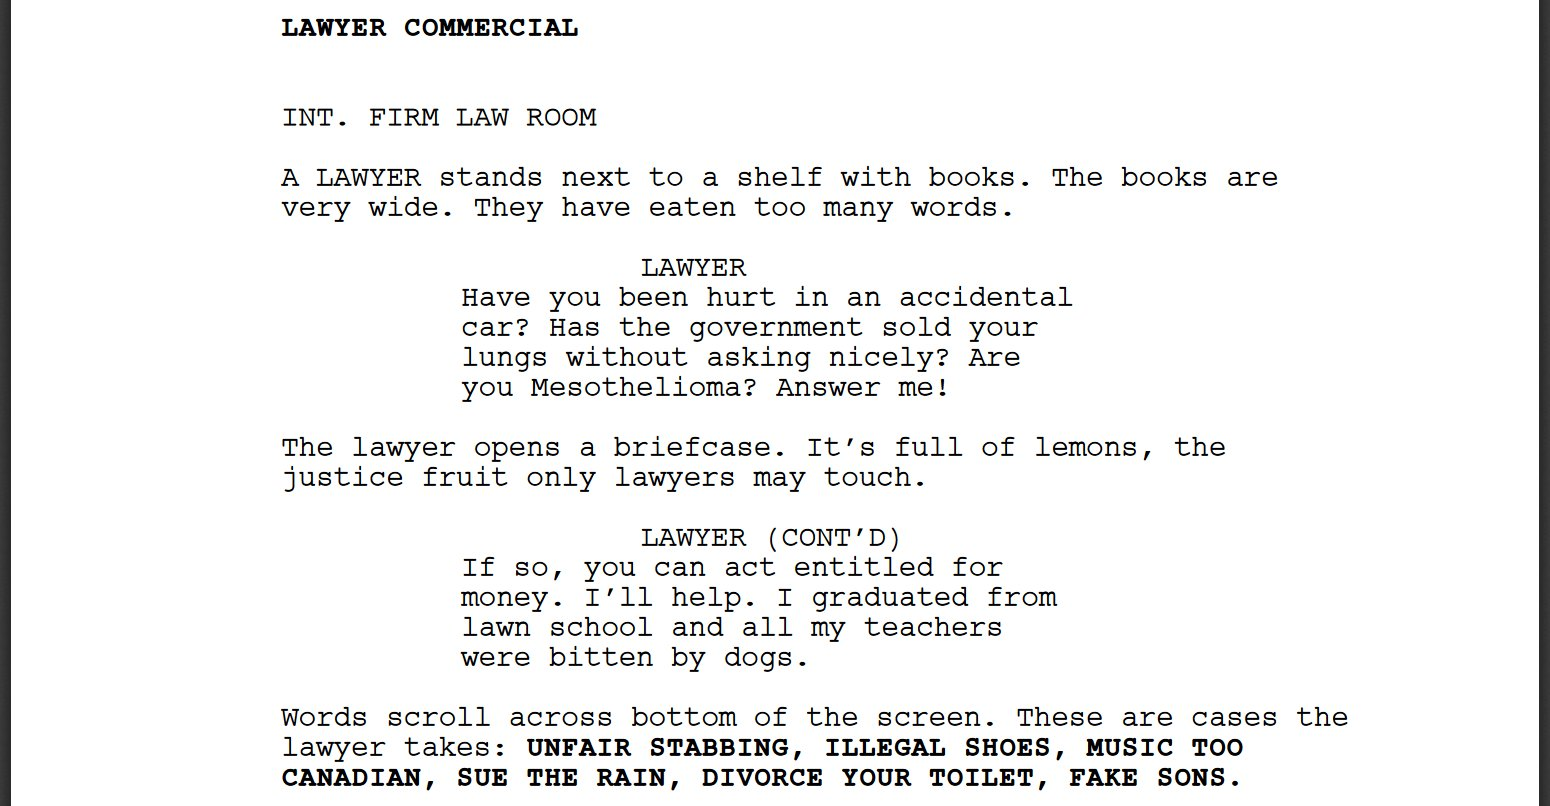 Keaton Patti On Twitter I Forced A Bot To Watch Over 1 000 Hours Of Lawyer Commercials And Then Asked It To Write A Lawyer Commercial Of Its Own Here Is The First